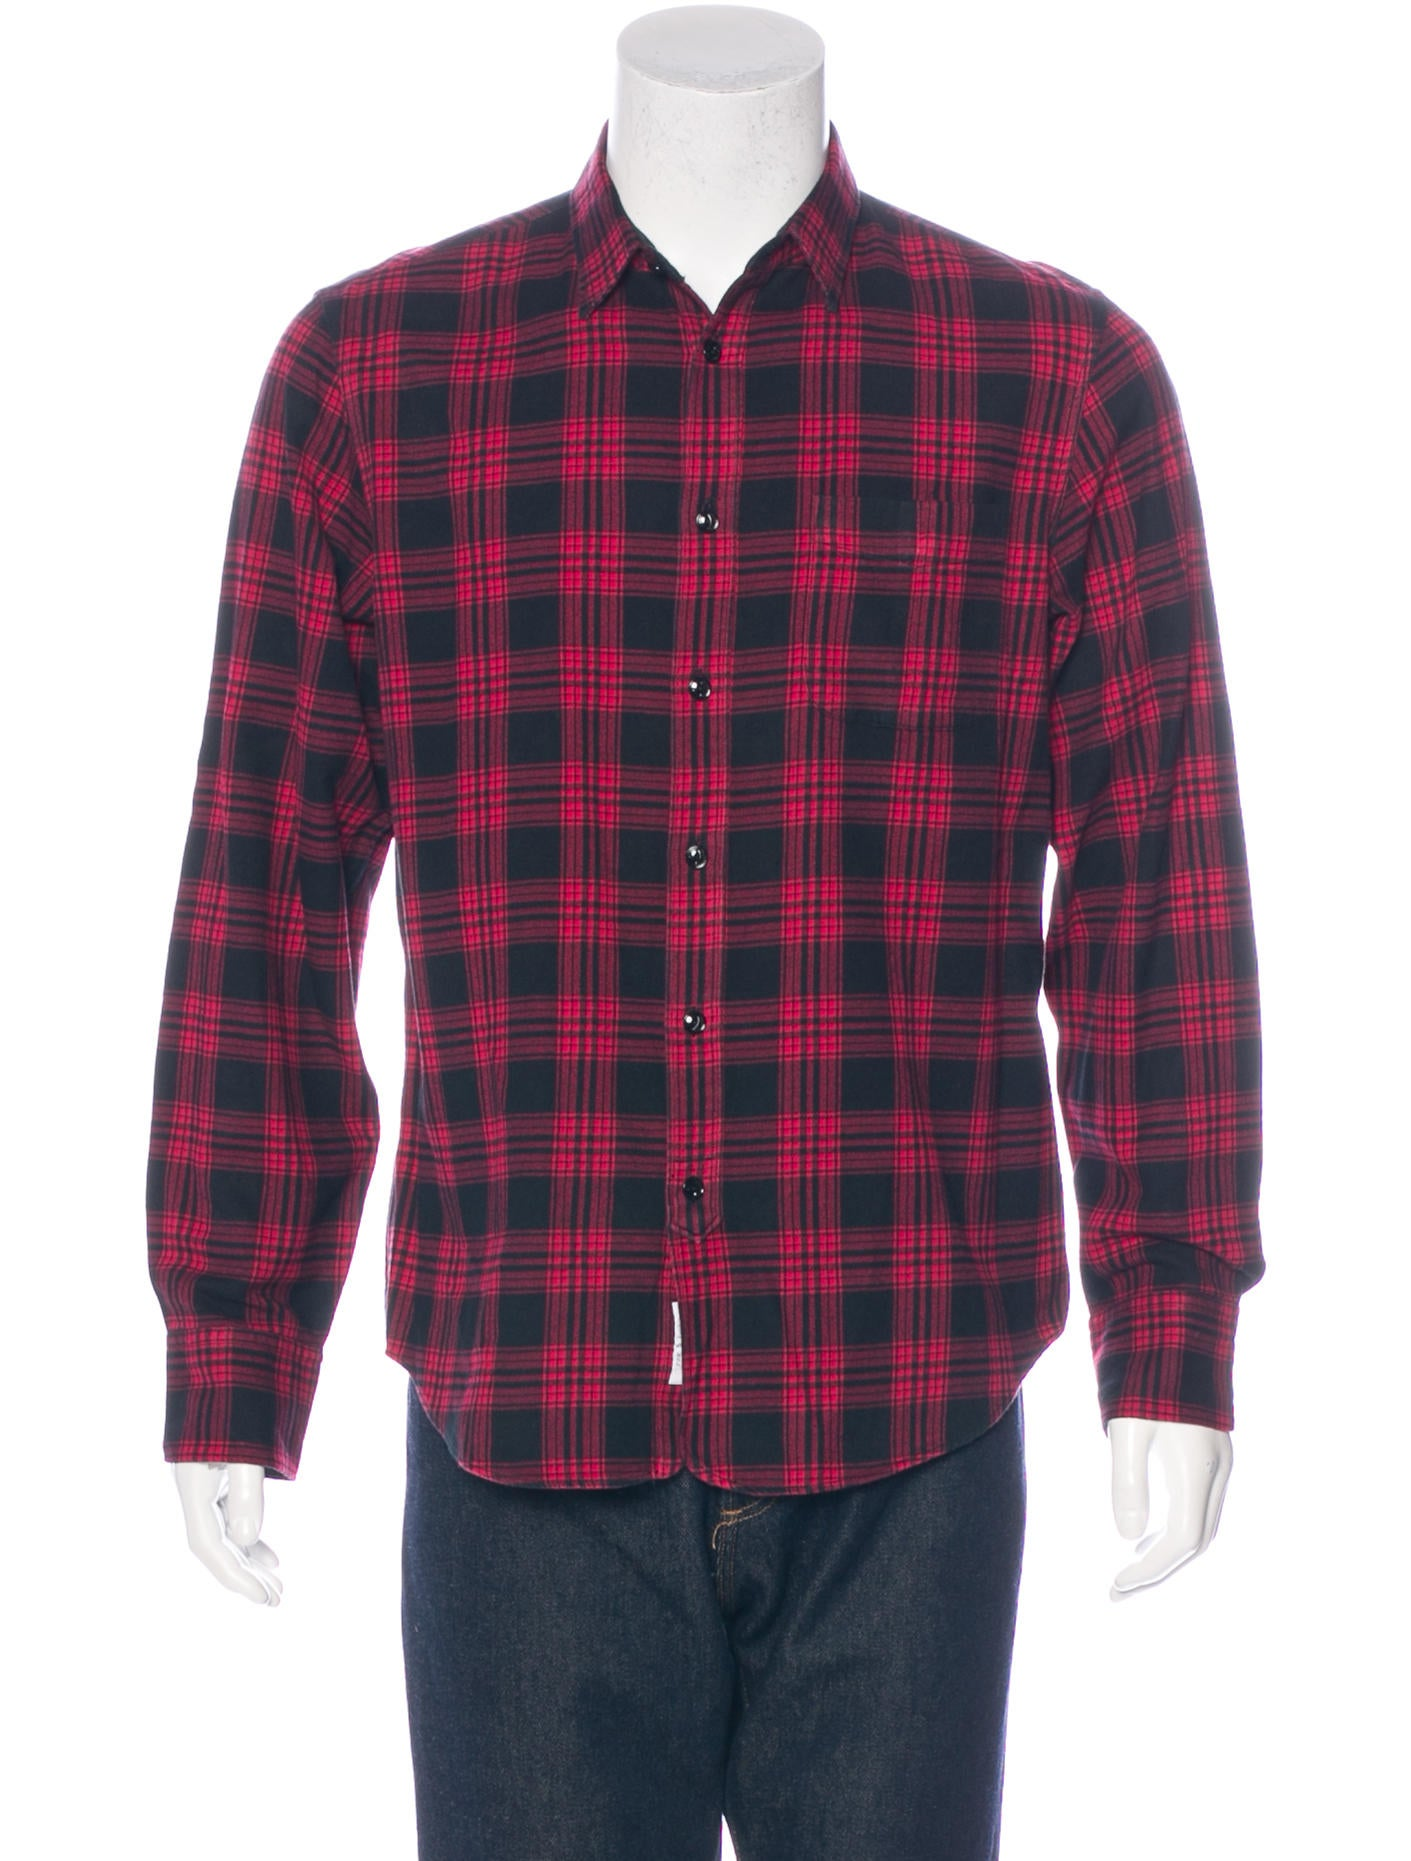 ★@ Slim Fit Gradient Plaid Sport Shirt >>!The Best product from Best seller today On Sale and help you to get Discount Prices. if you visit store for buy Slim Fit Gradient Plaid Sport Shirt Now See Low Prices Slim Fit Gradient Plaid Sport Shirt For you.